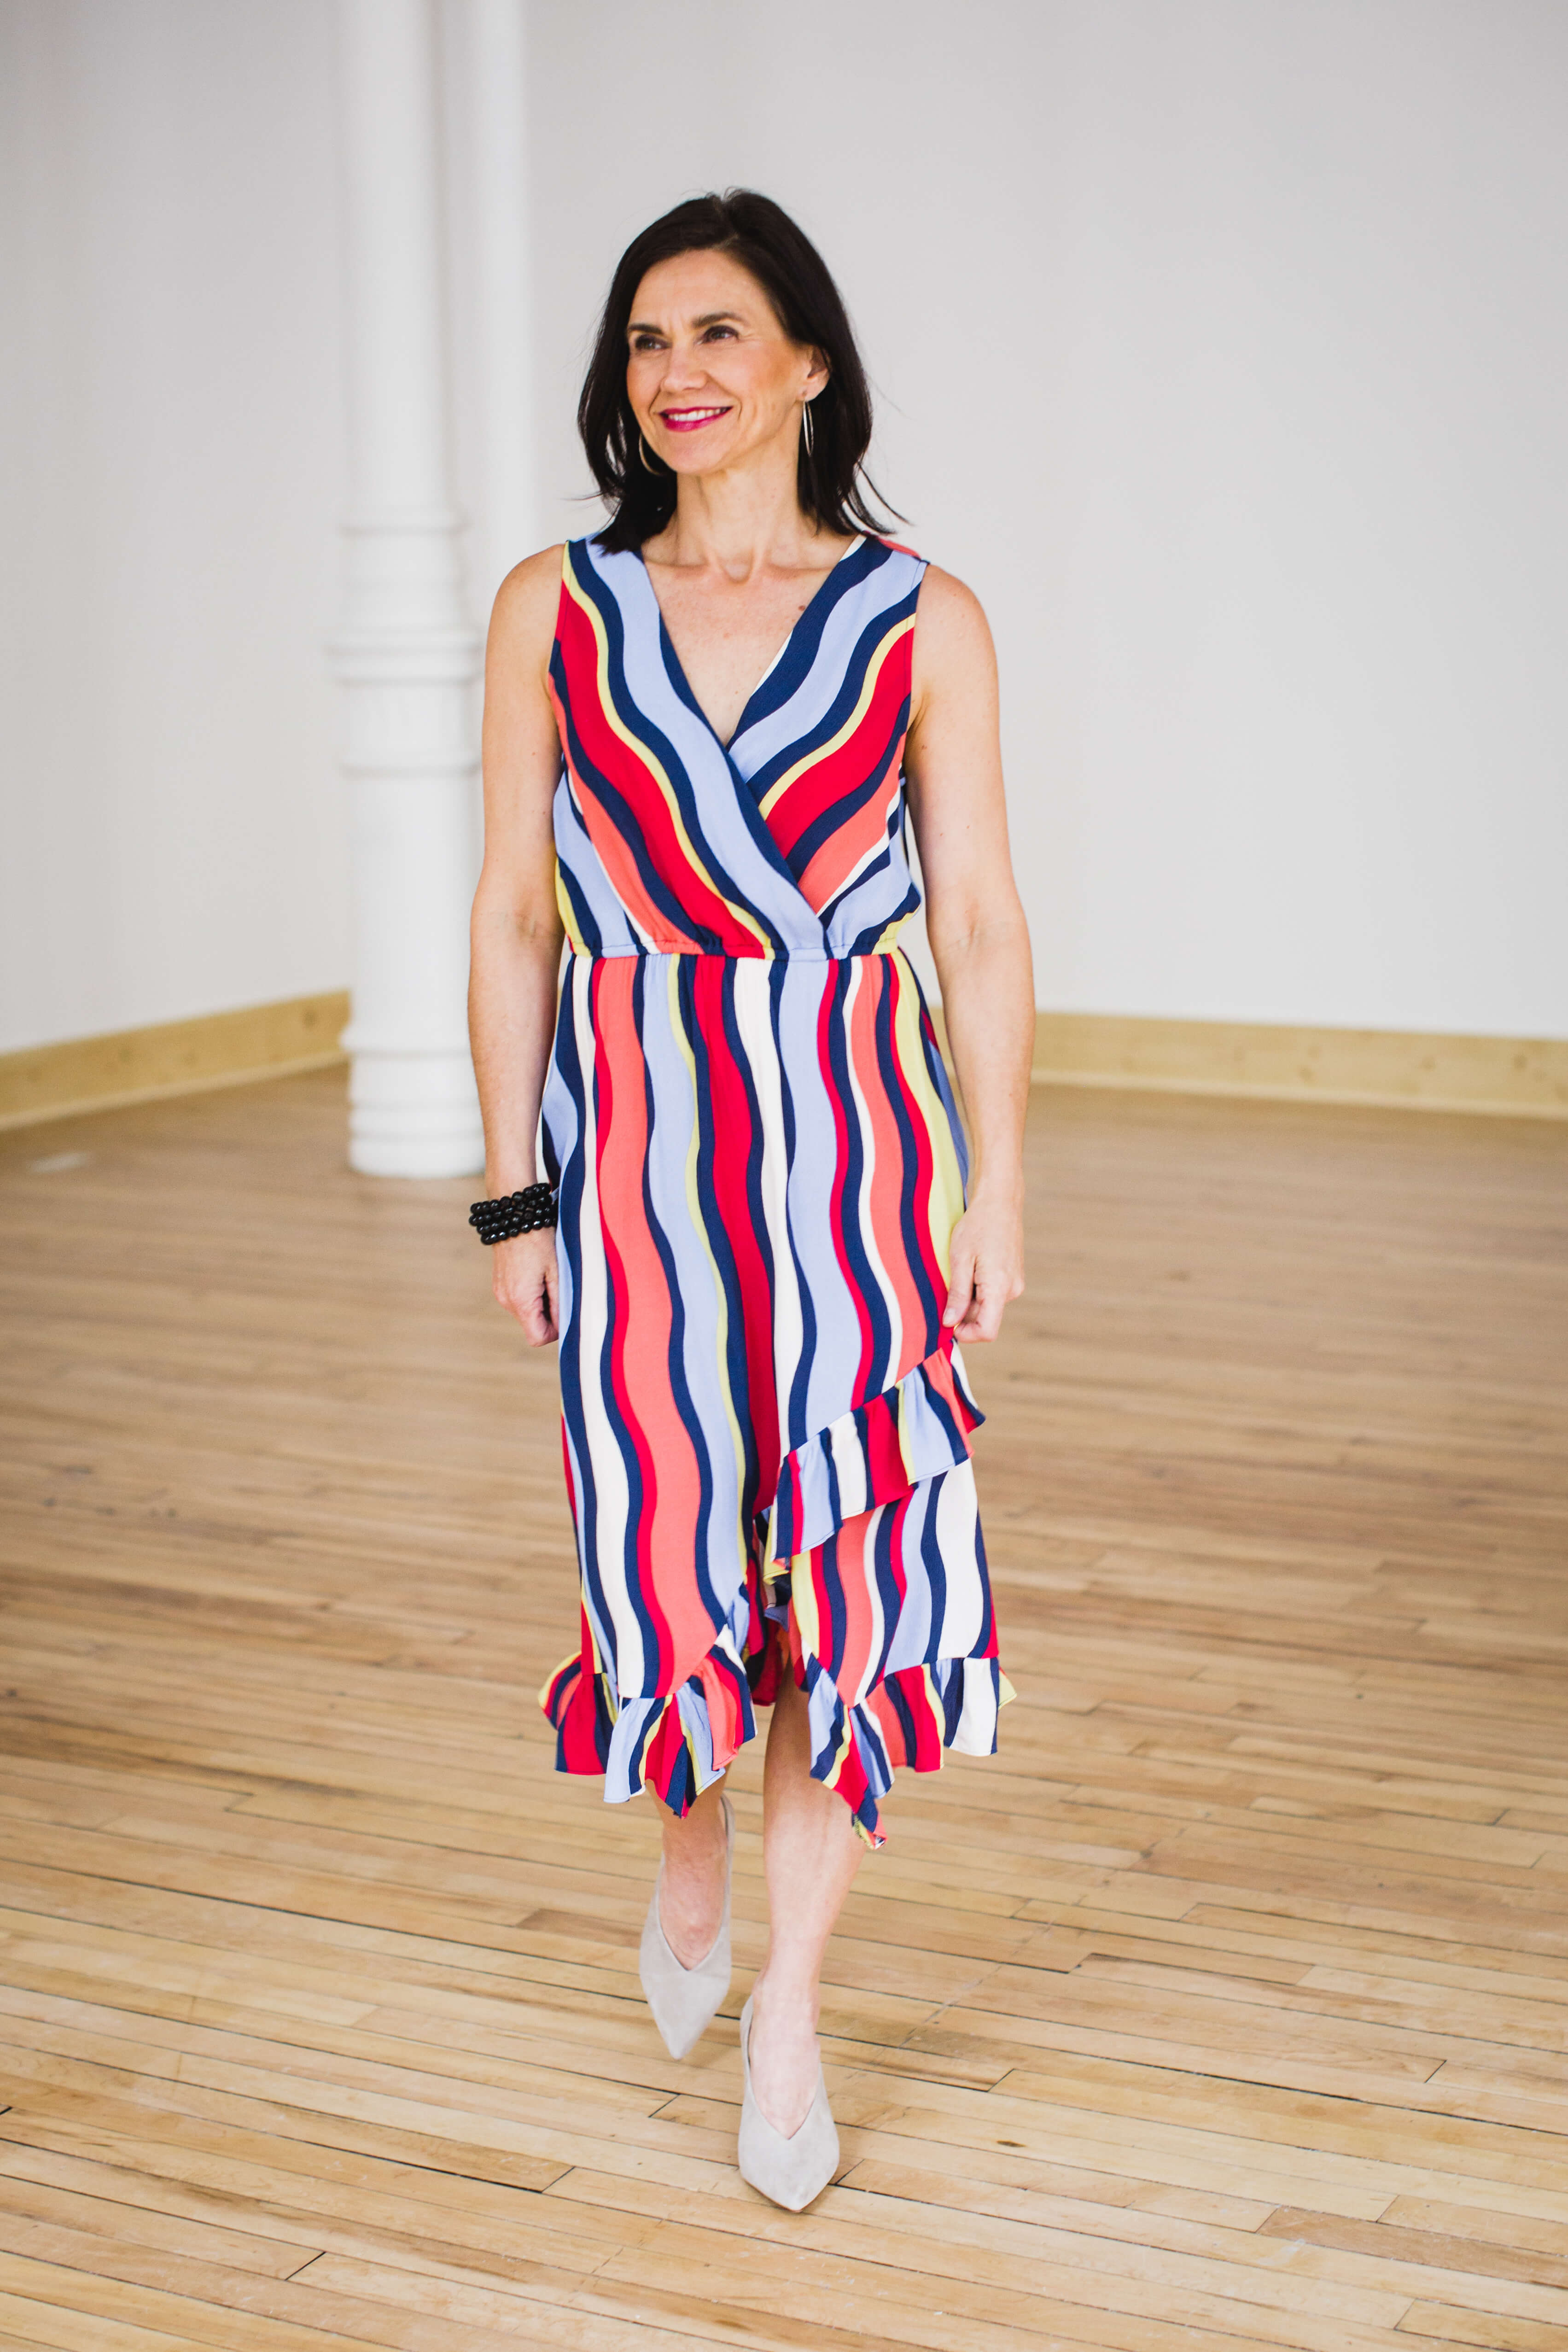 Anthroplogie - Spring Bold stripe frock - modern woman